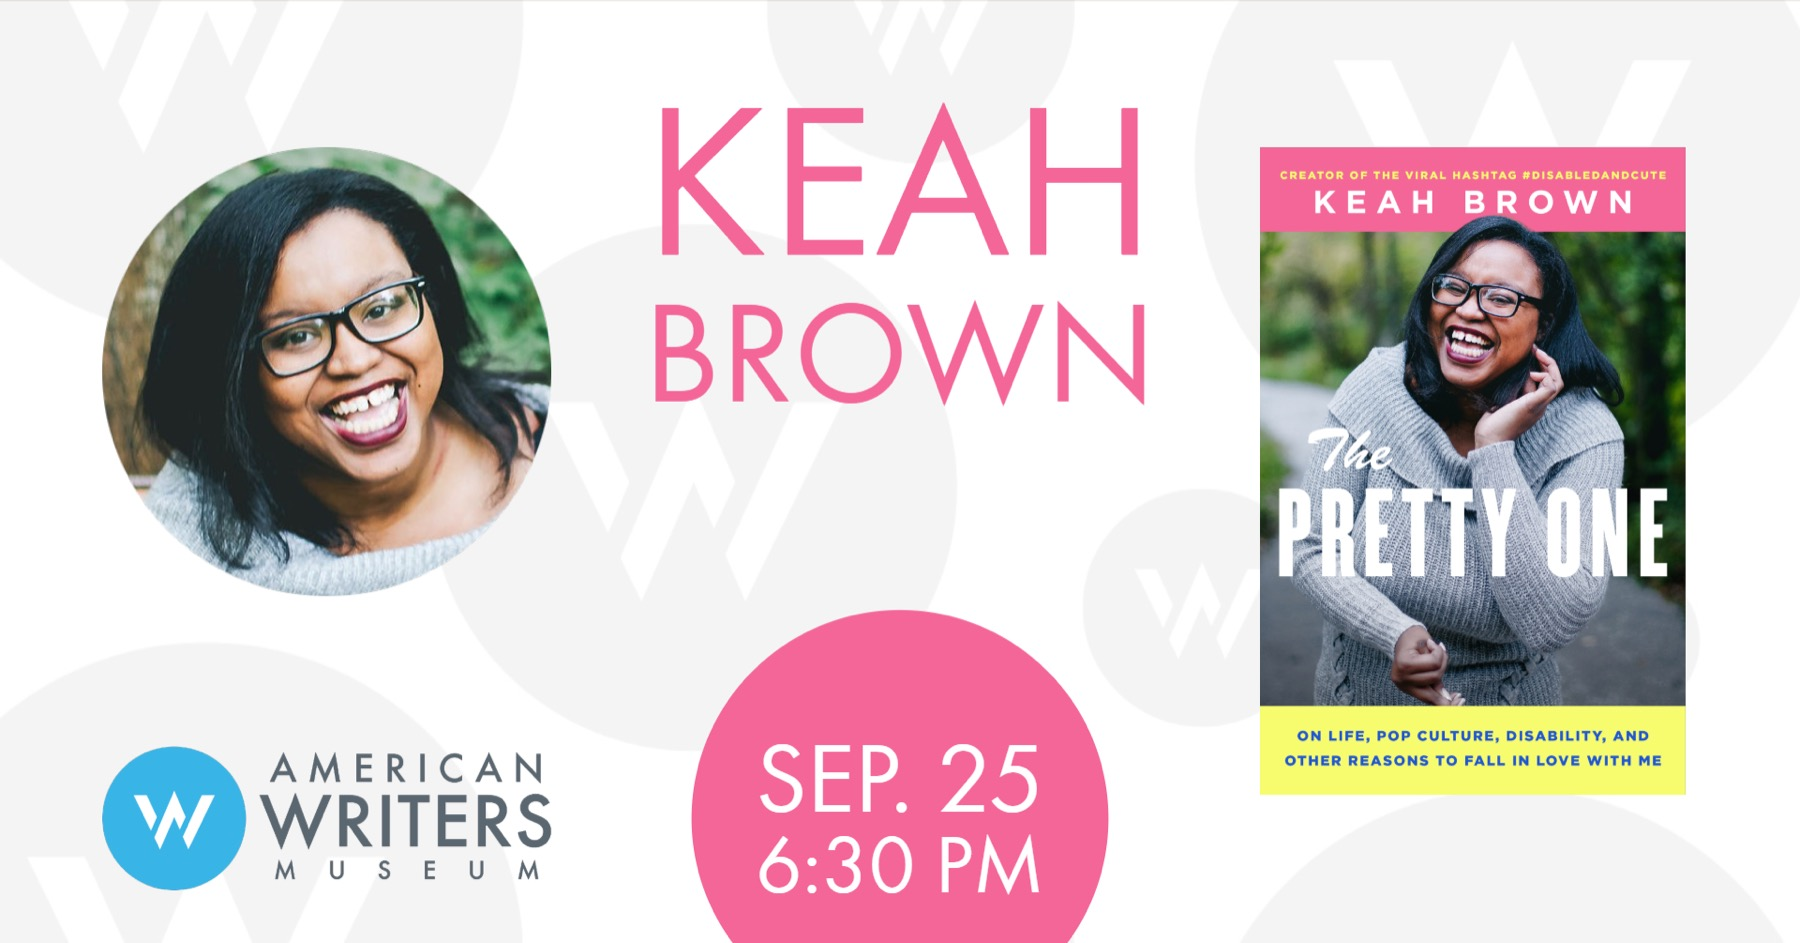 Keah Brown: The Pretty One promo for Chicago